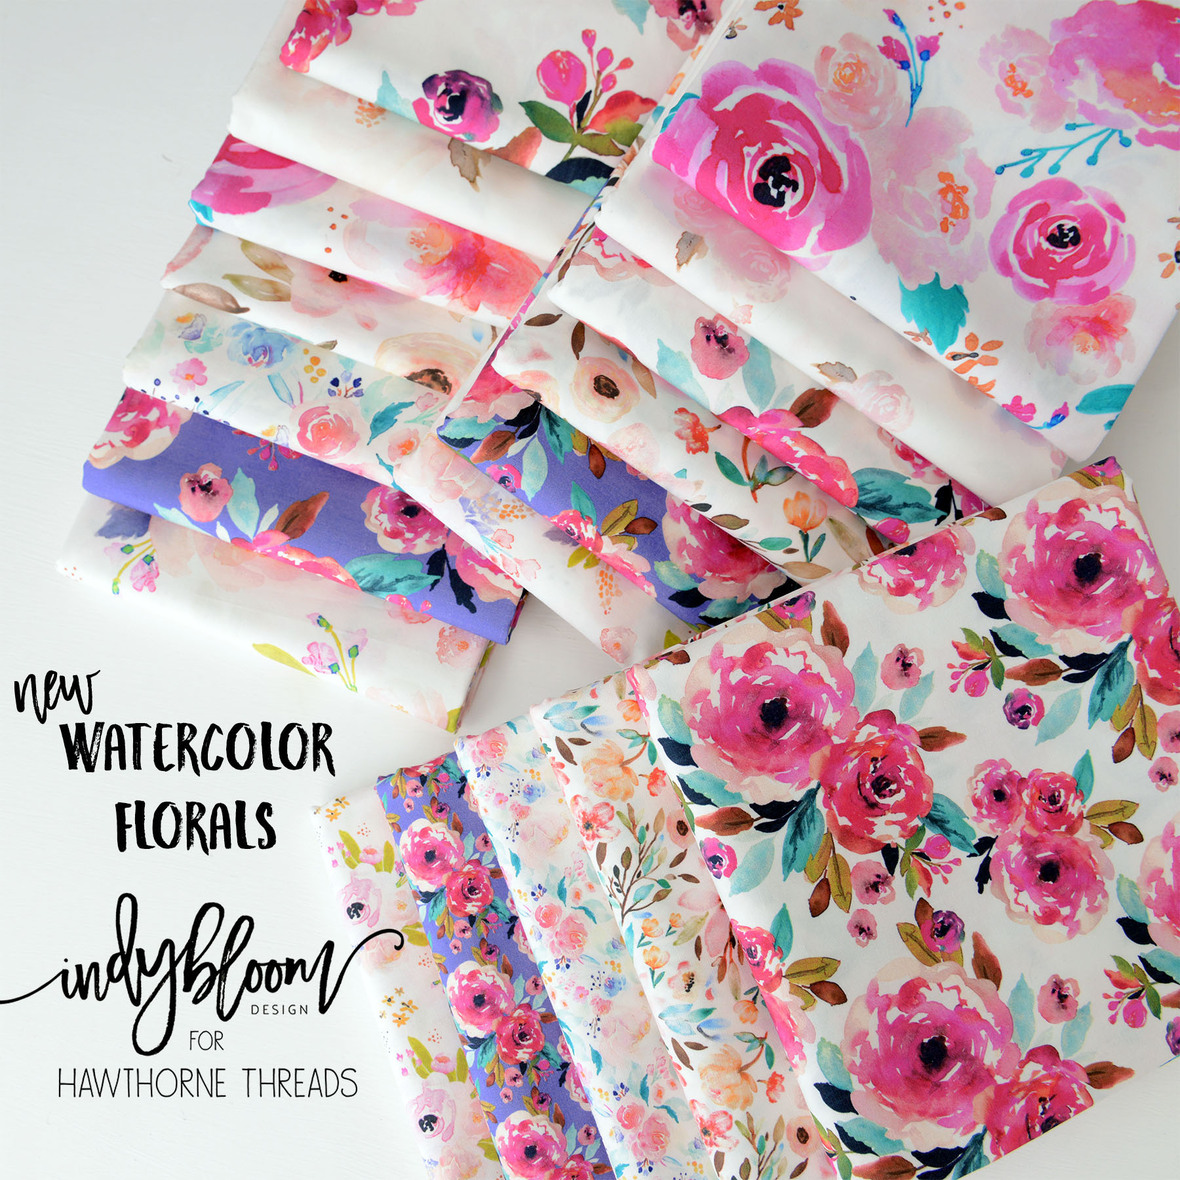 January 18 New Watercolor Florals from Indy Bloom